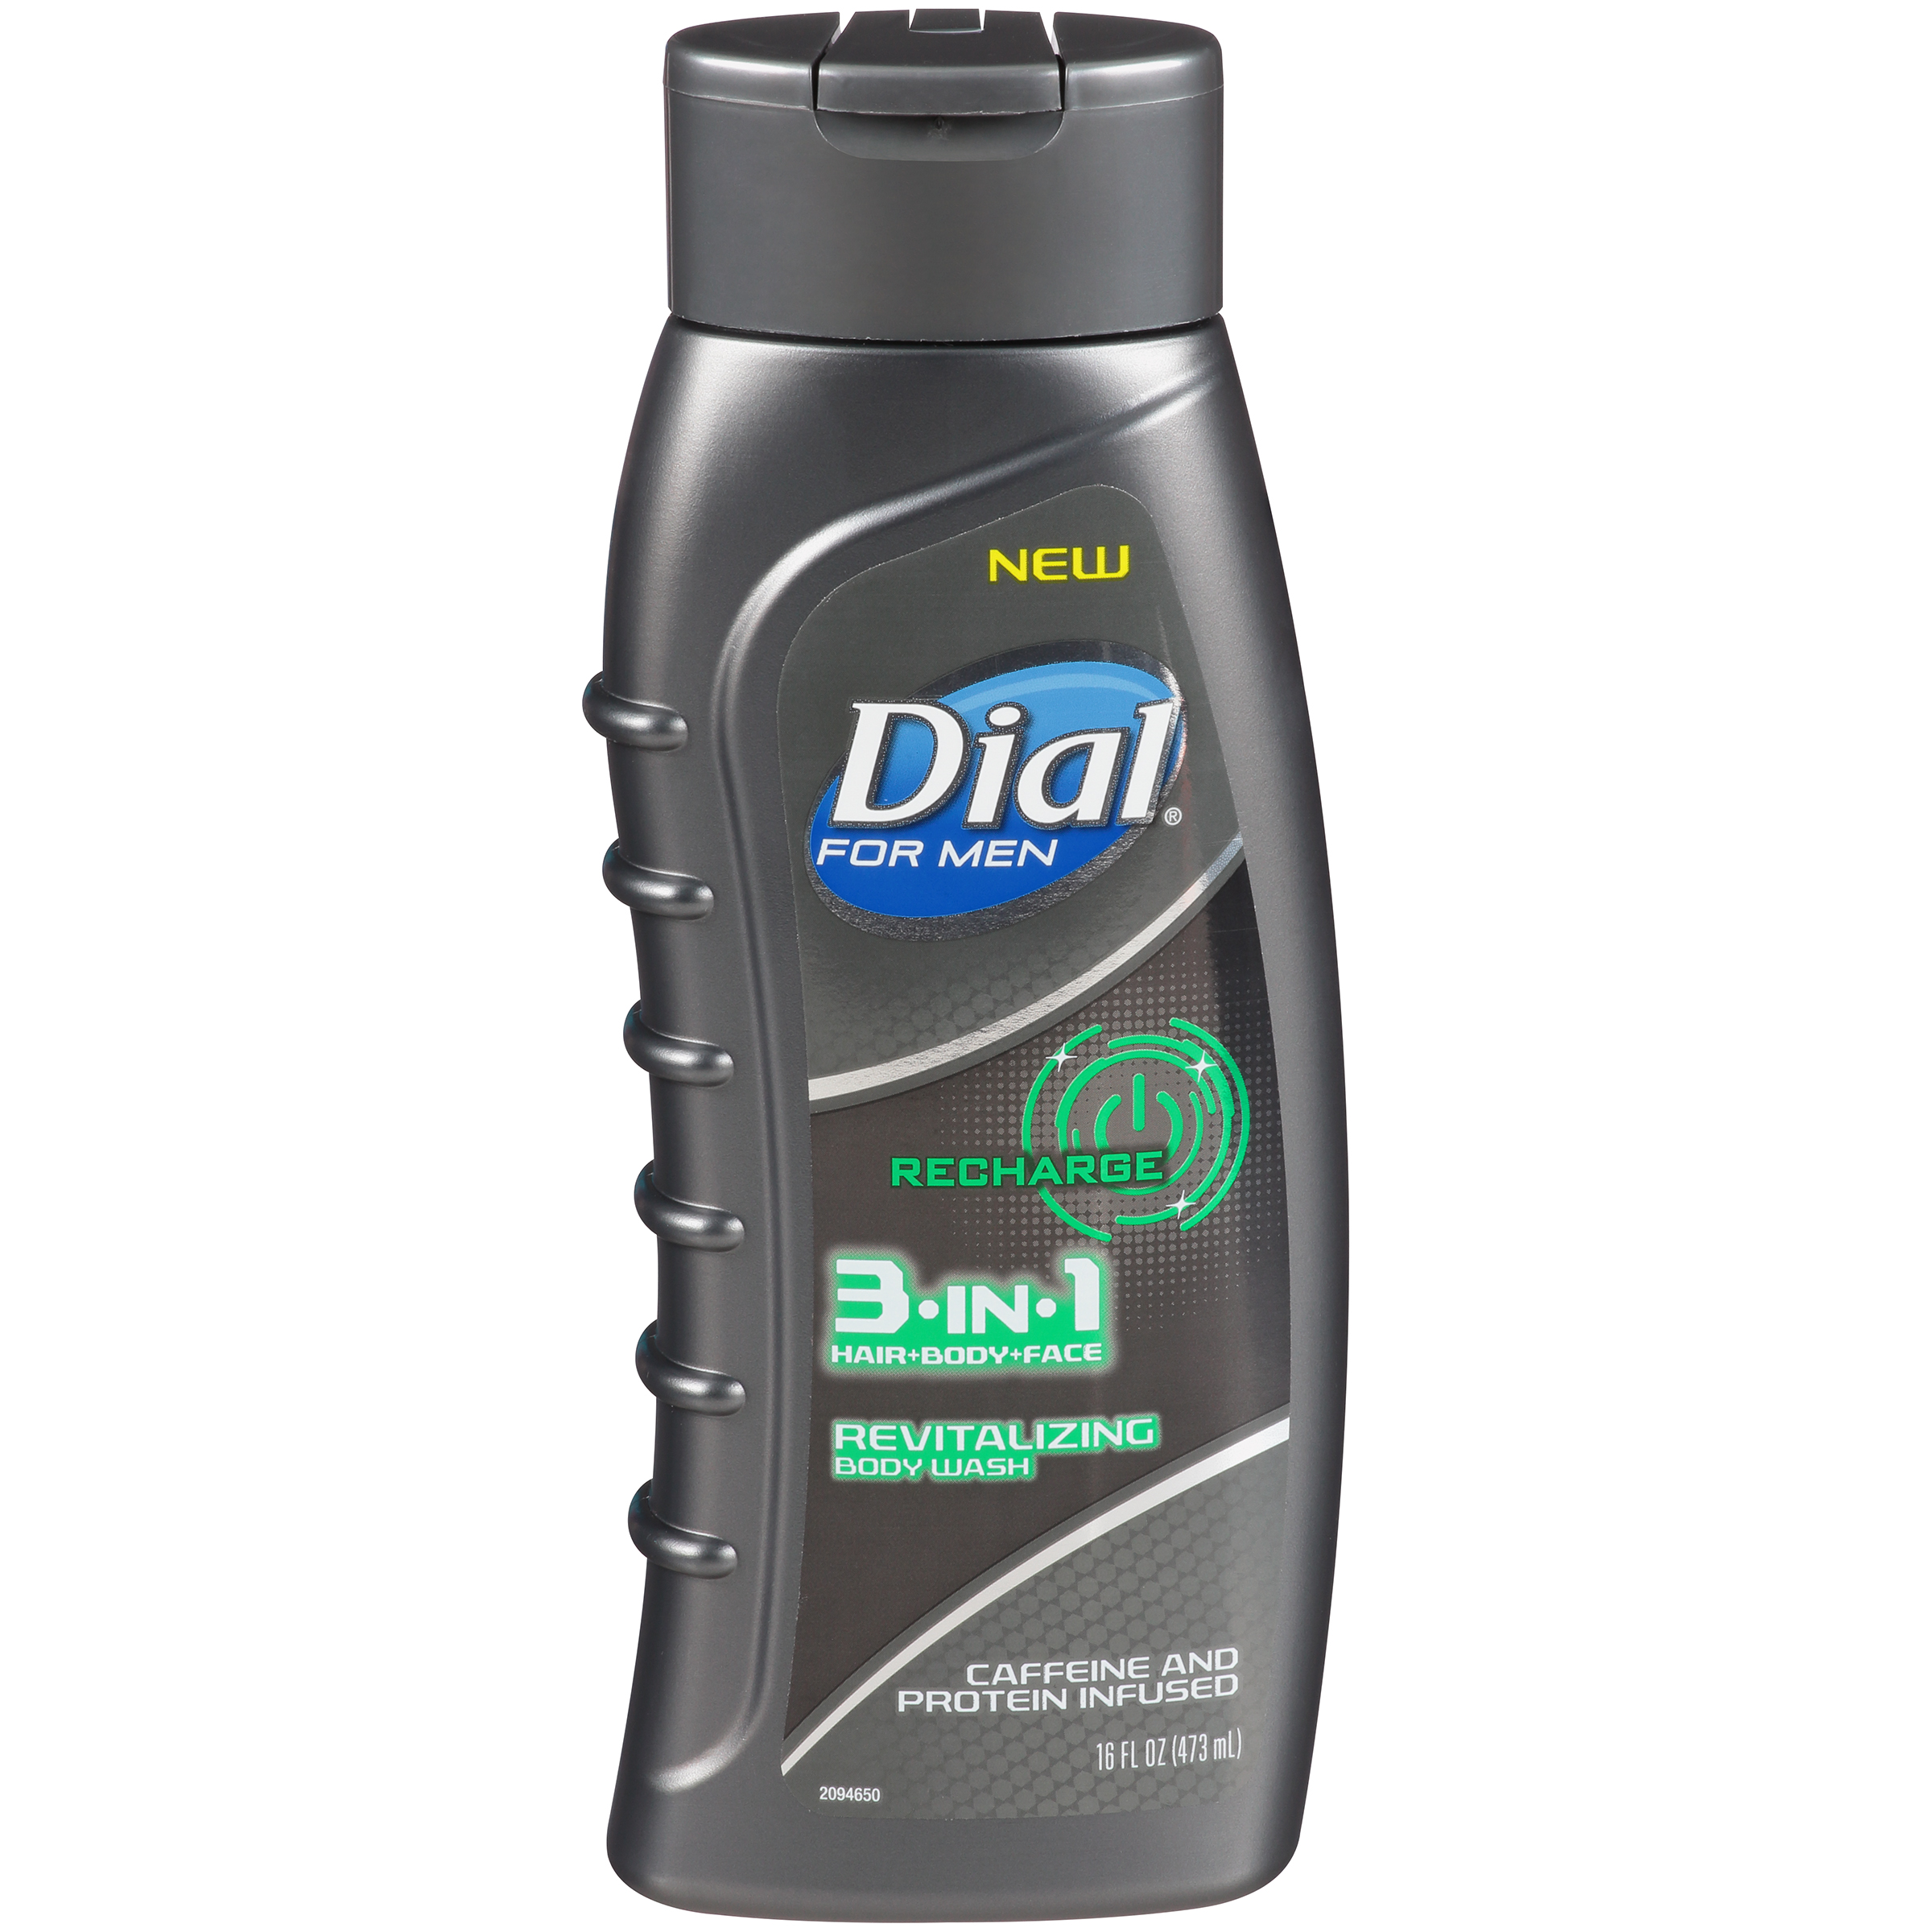 Dial for Men Body Wash, 3-in-1 Recharge, 16 Ounce